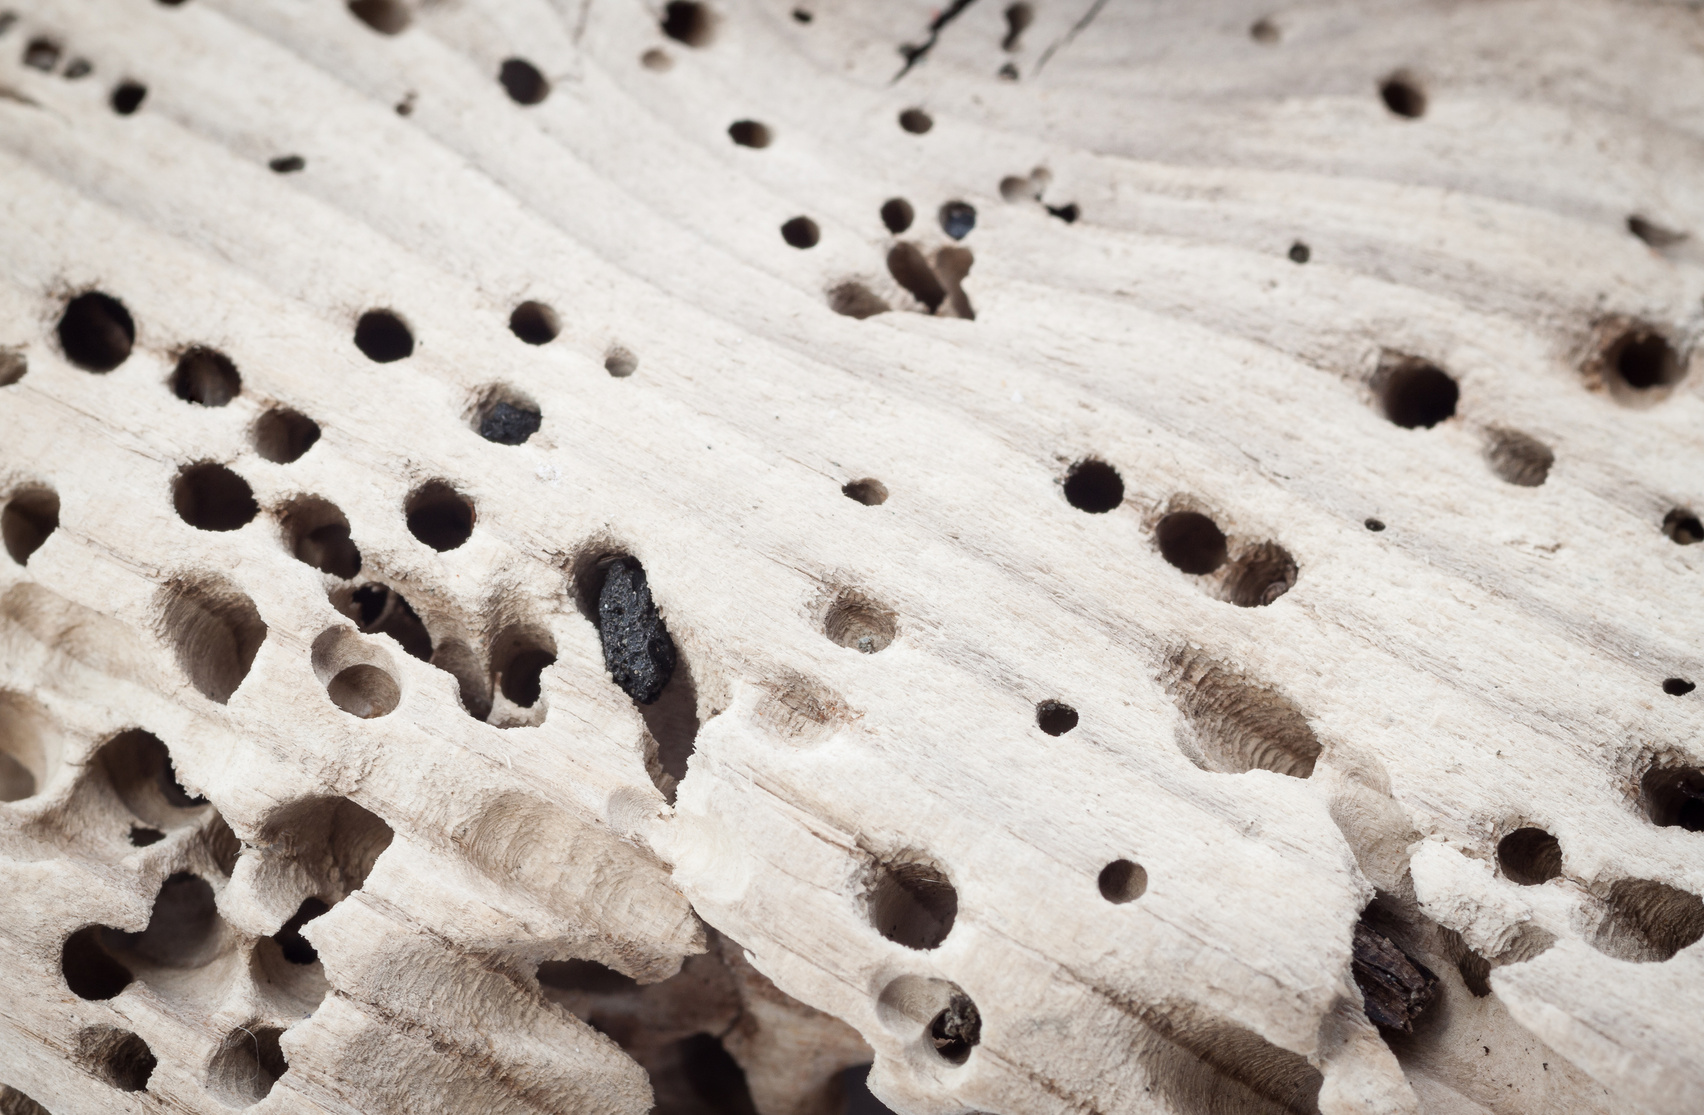 Termites can destroy a piece of wood with incredible speed. Other insects can prove to be a nuisance as well.